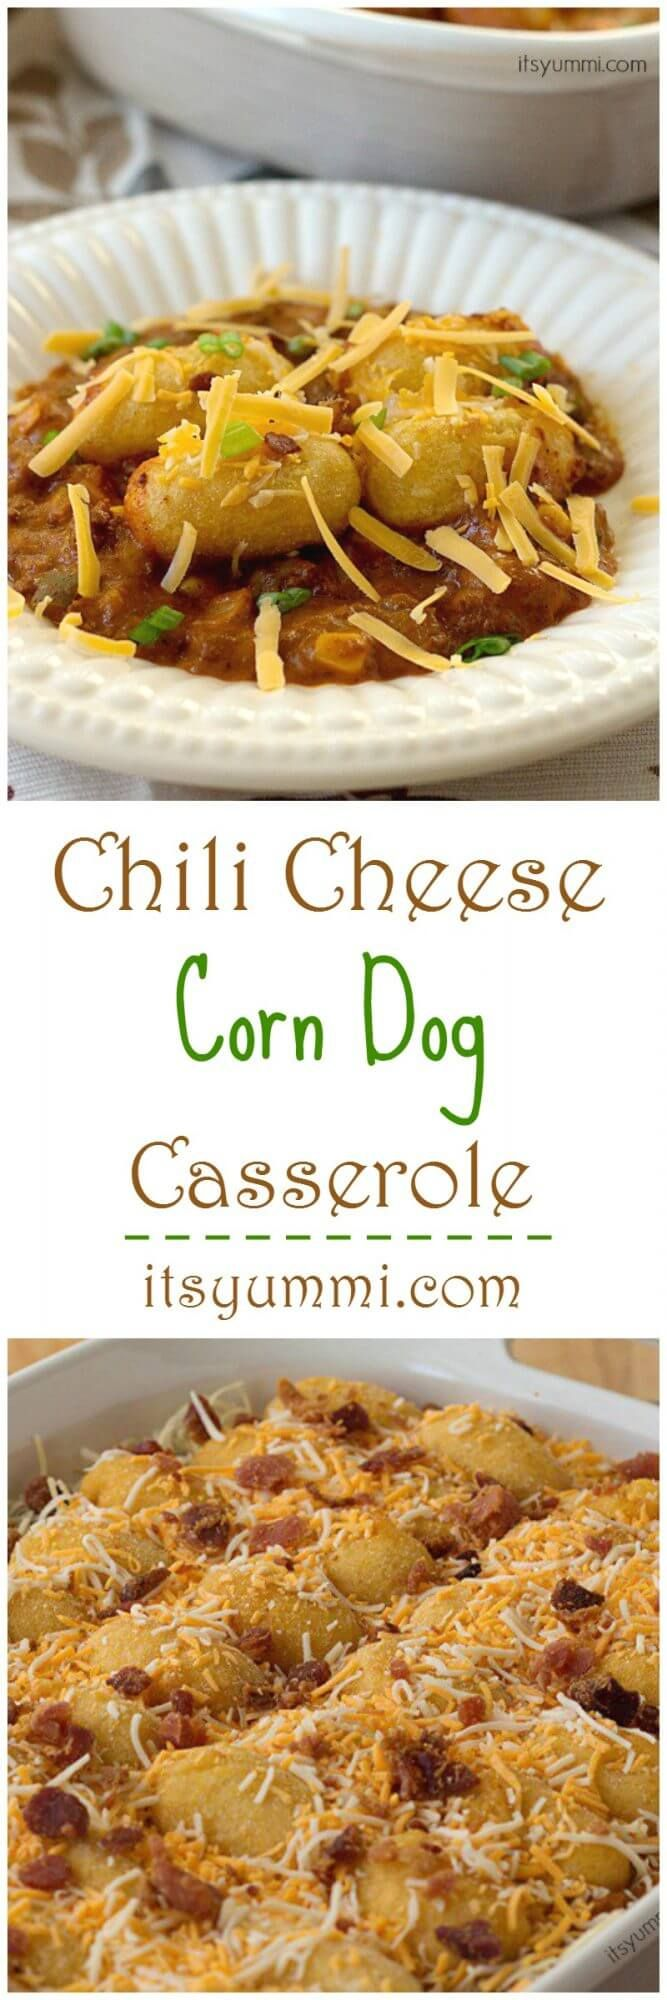 Chili Cheese Corn Dog Casserole - This quick, easy, kid friendly dinner recipe can be made in less than 30 minutes. Get the recipe from @itsyummi